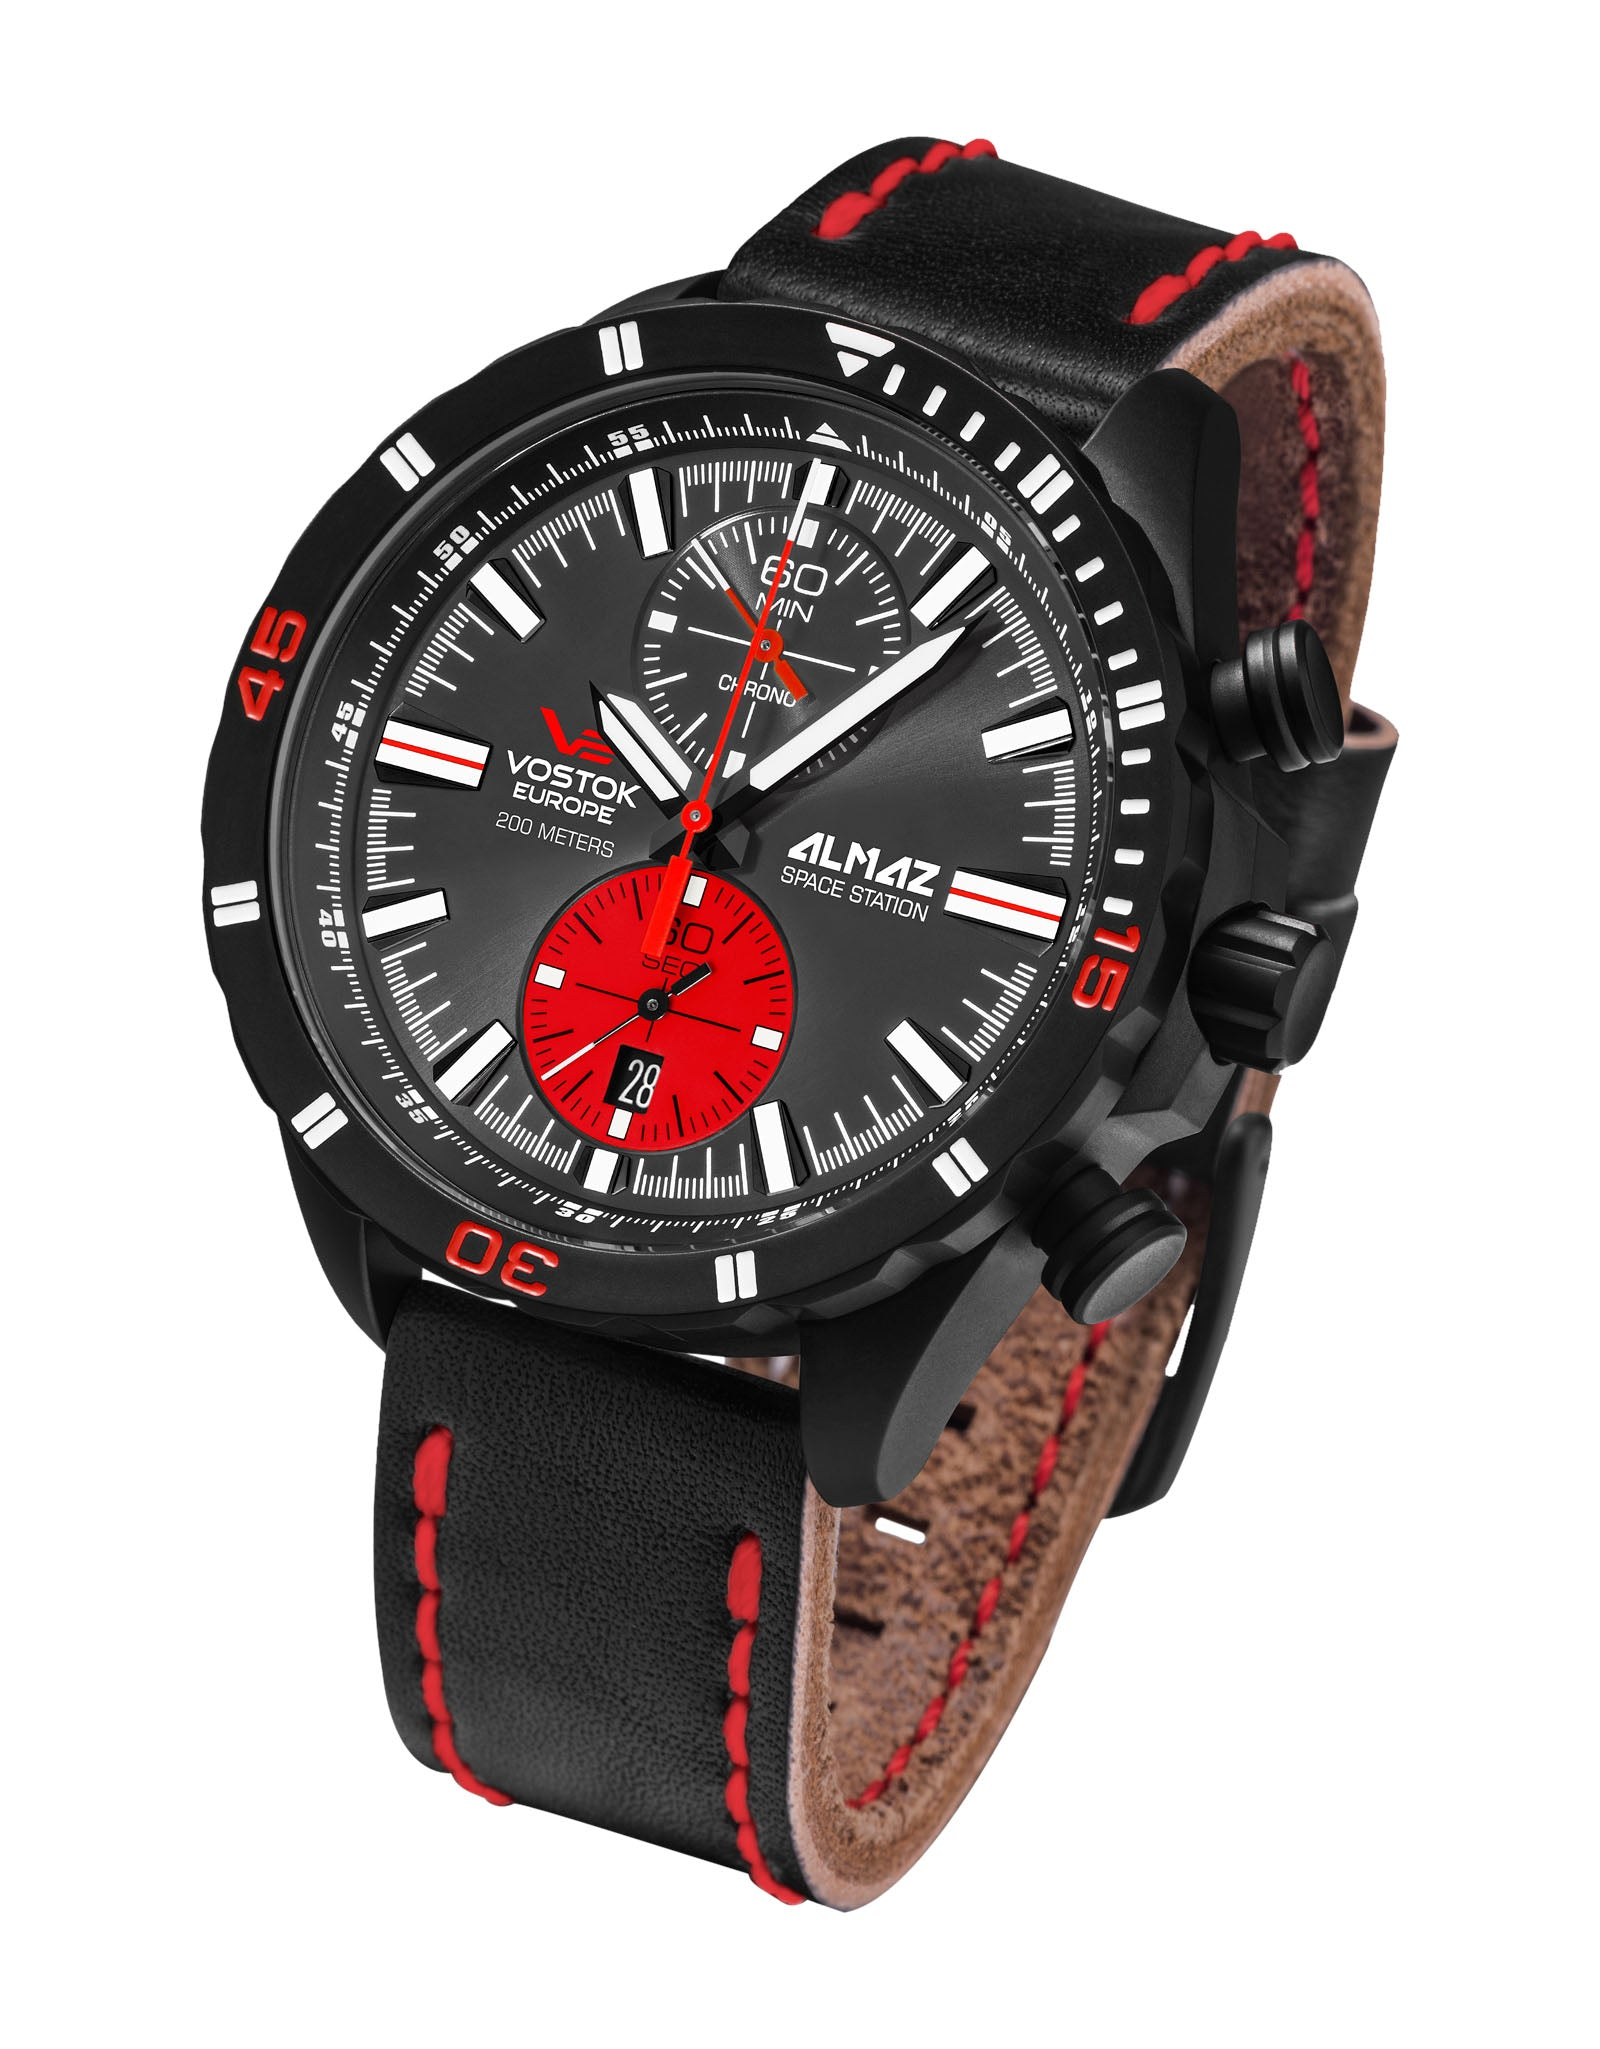 Almaz 6S11-320C260 Black Leather Strap